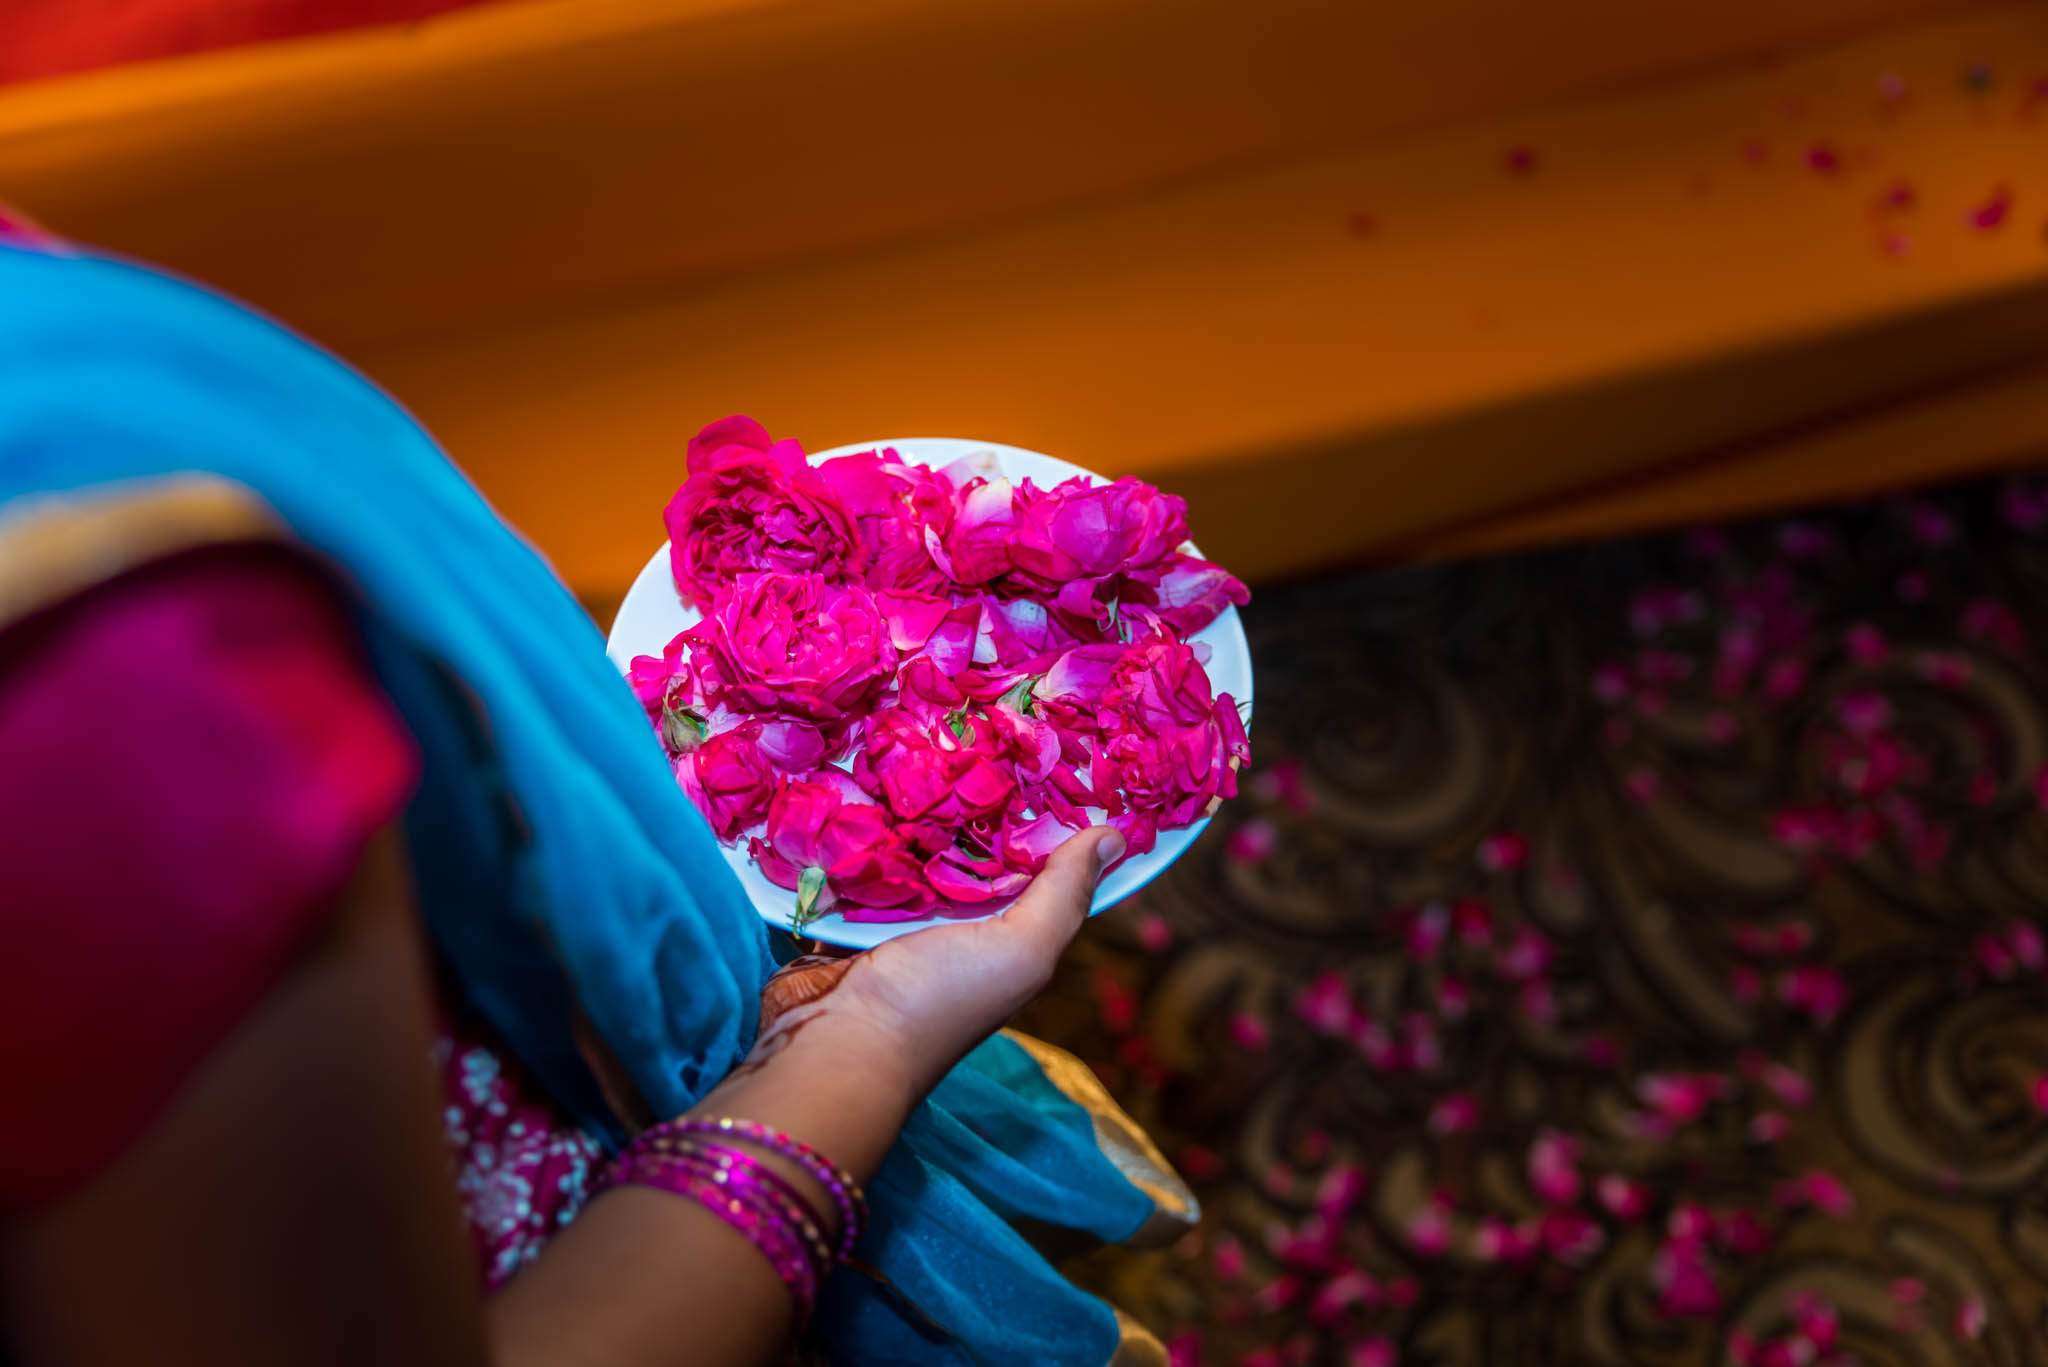 Candid-Wedding-Photography-Nagpur-Destination-63